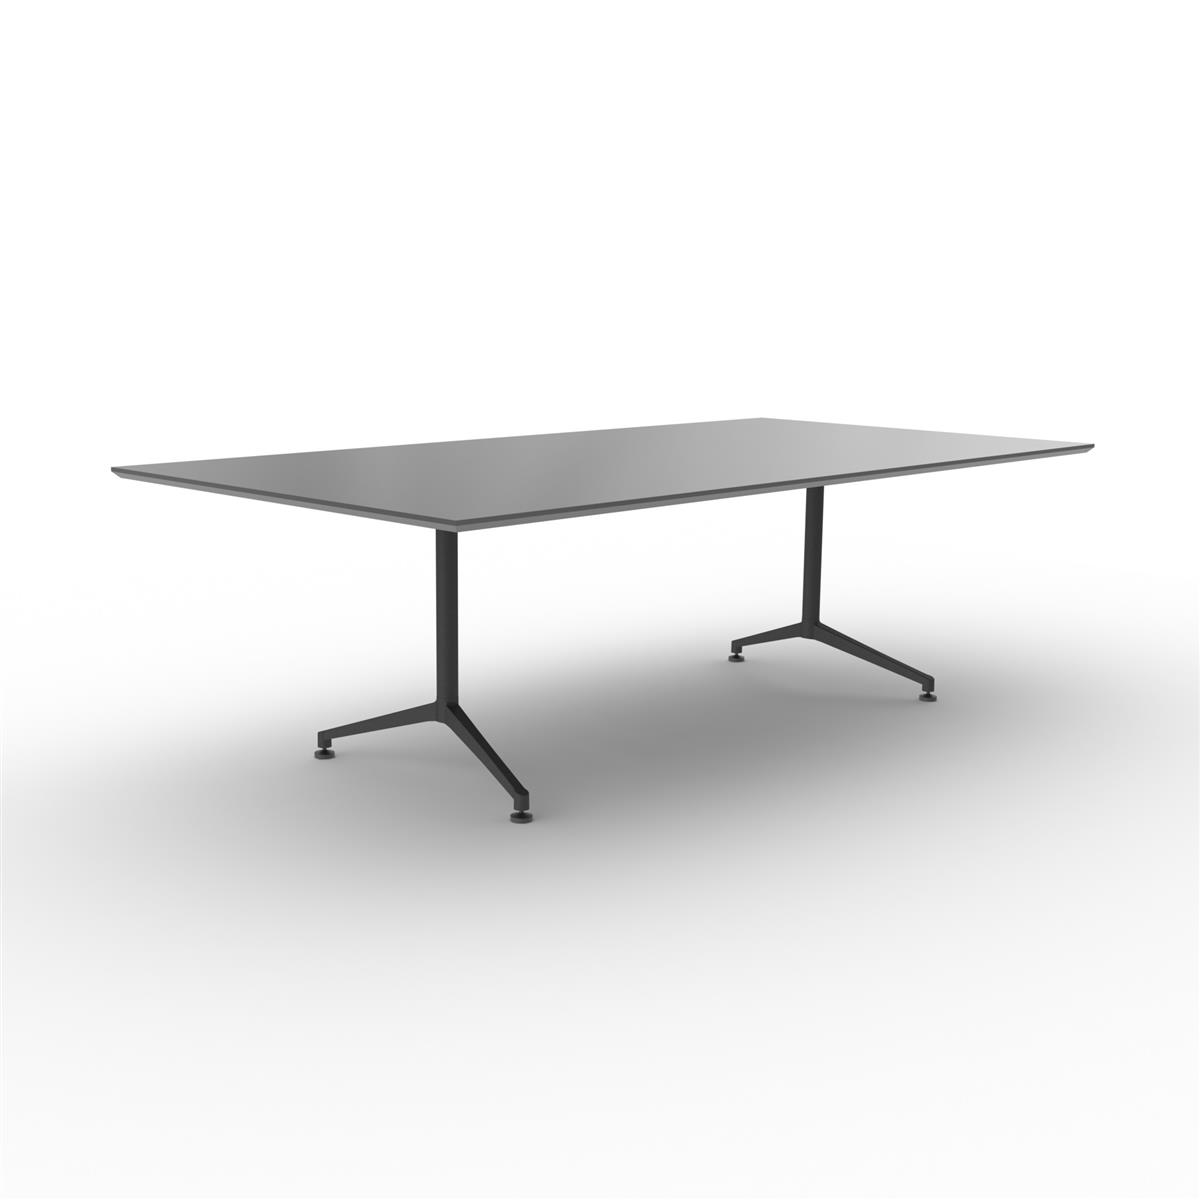 X1 Seamless Table 240 x 120 cm - sort linoleum med sort understell